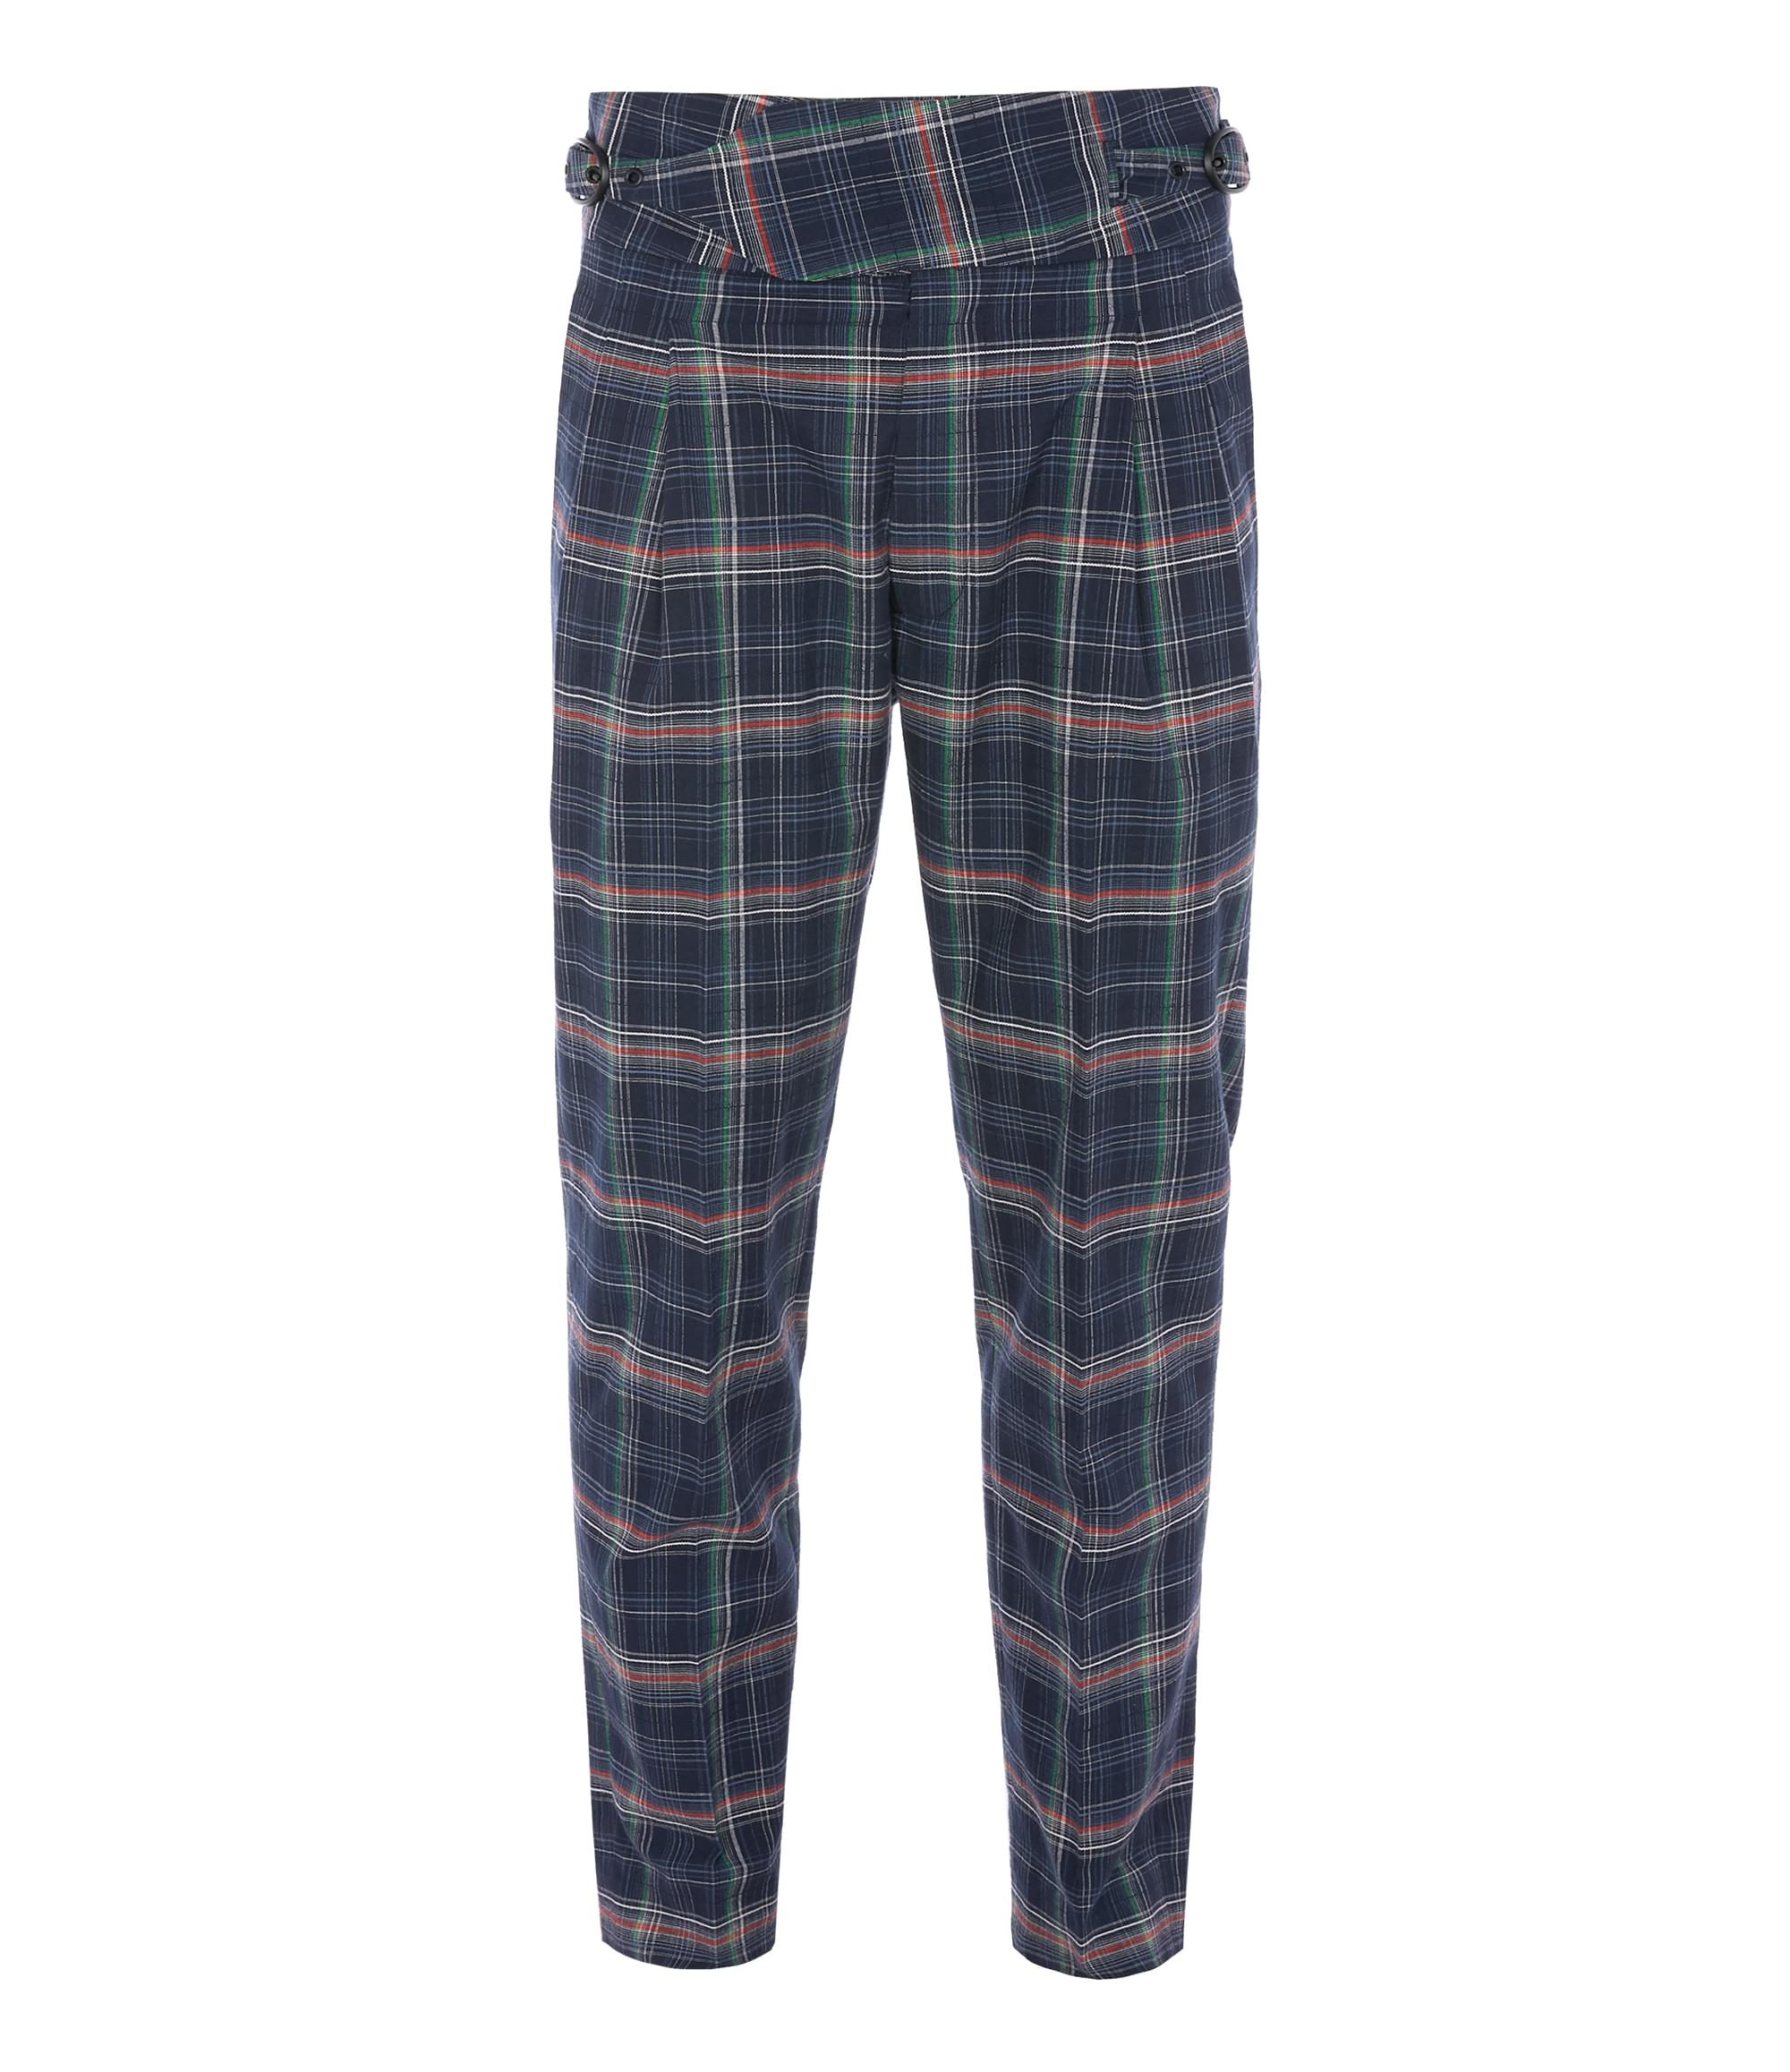 Vivienne Westwood New Classic Trousers Navy Check